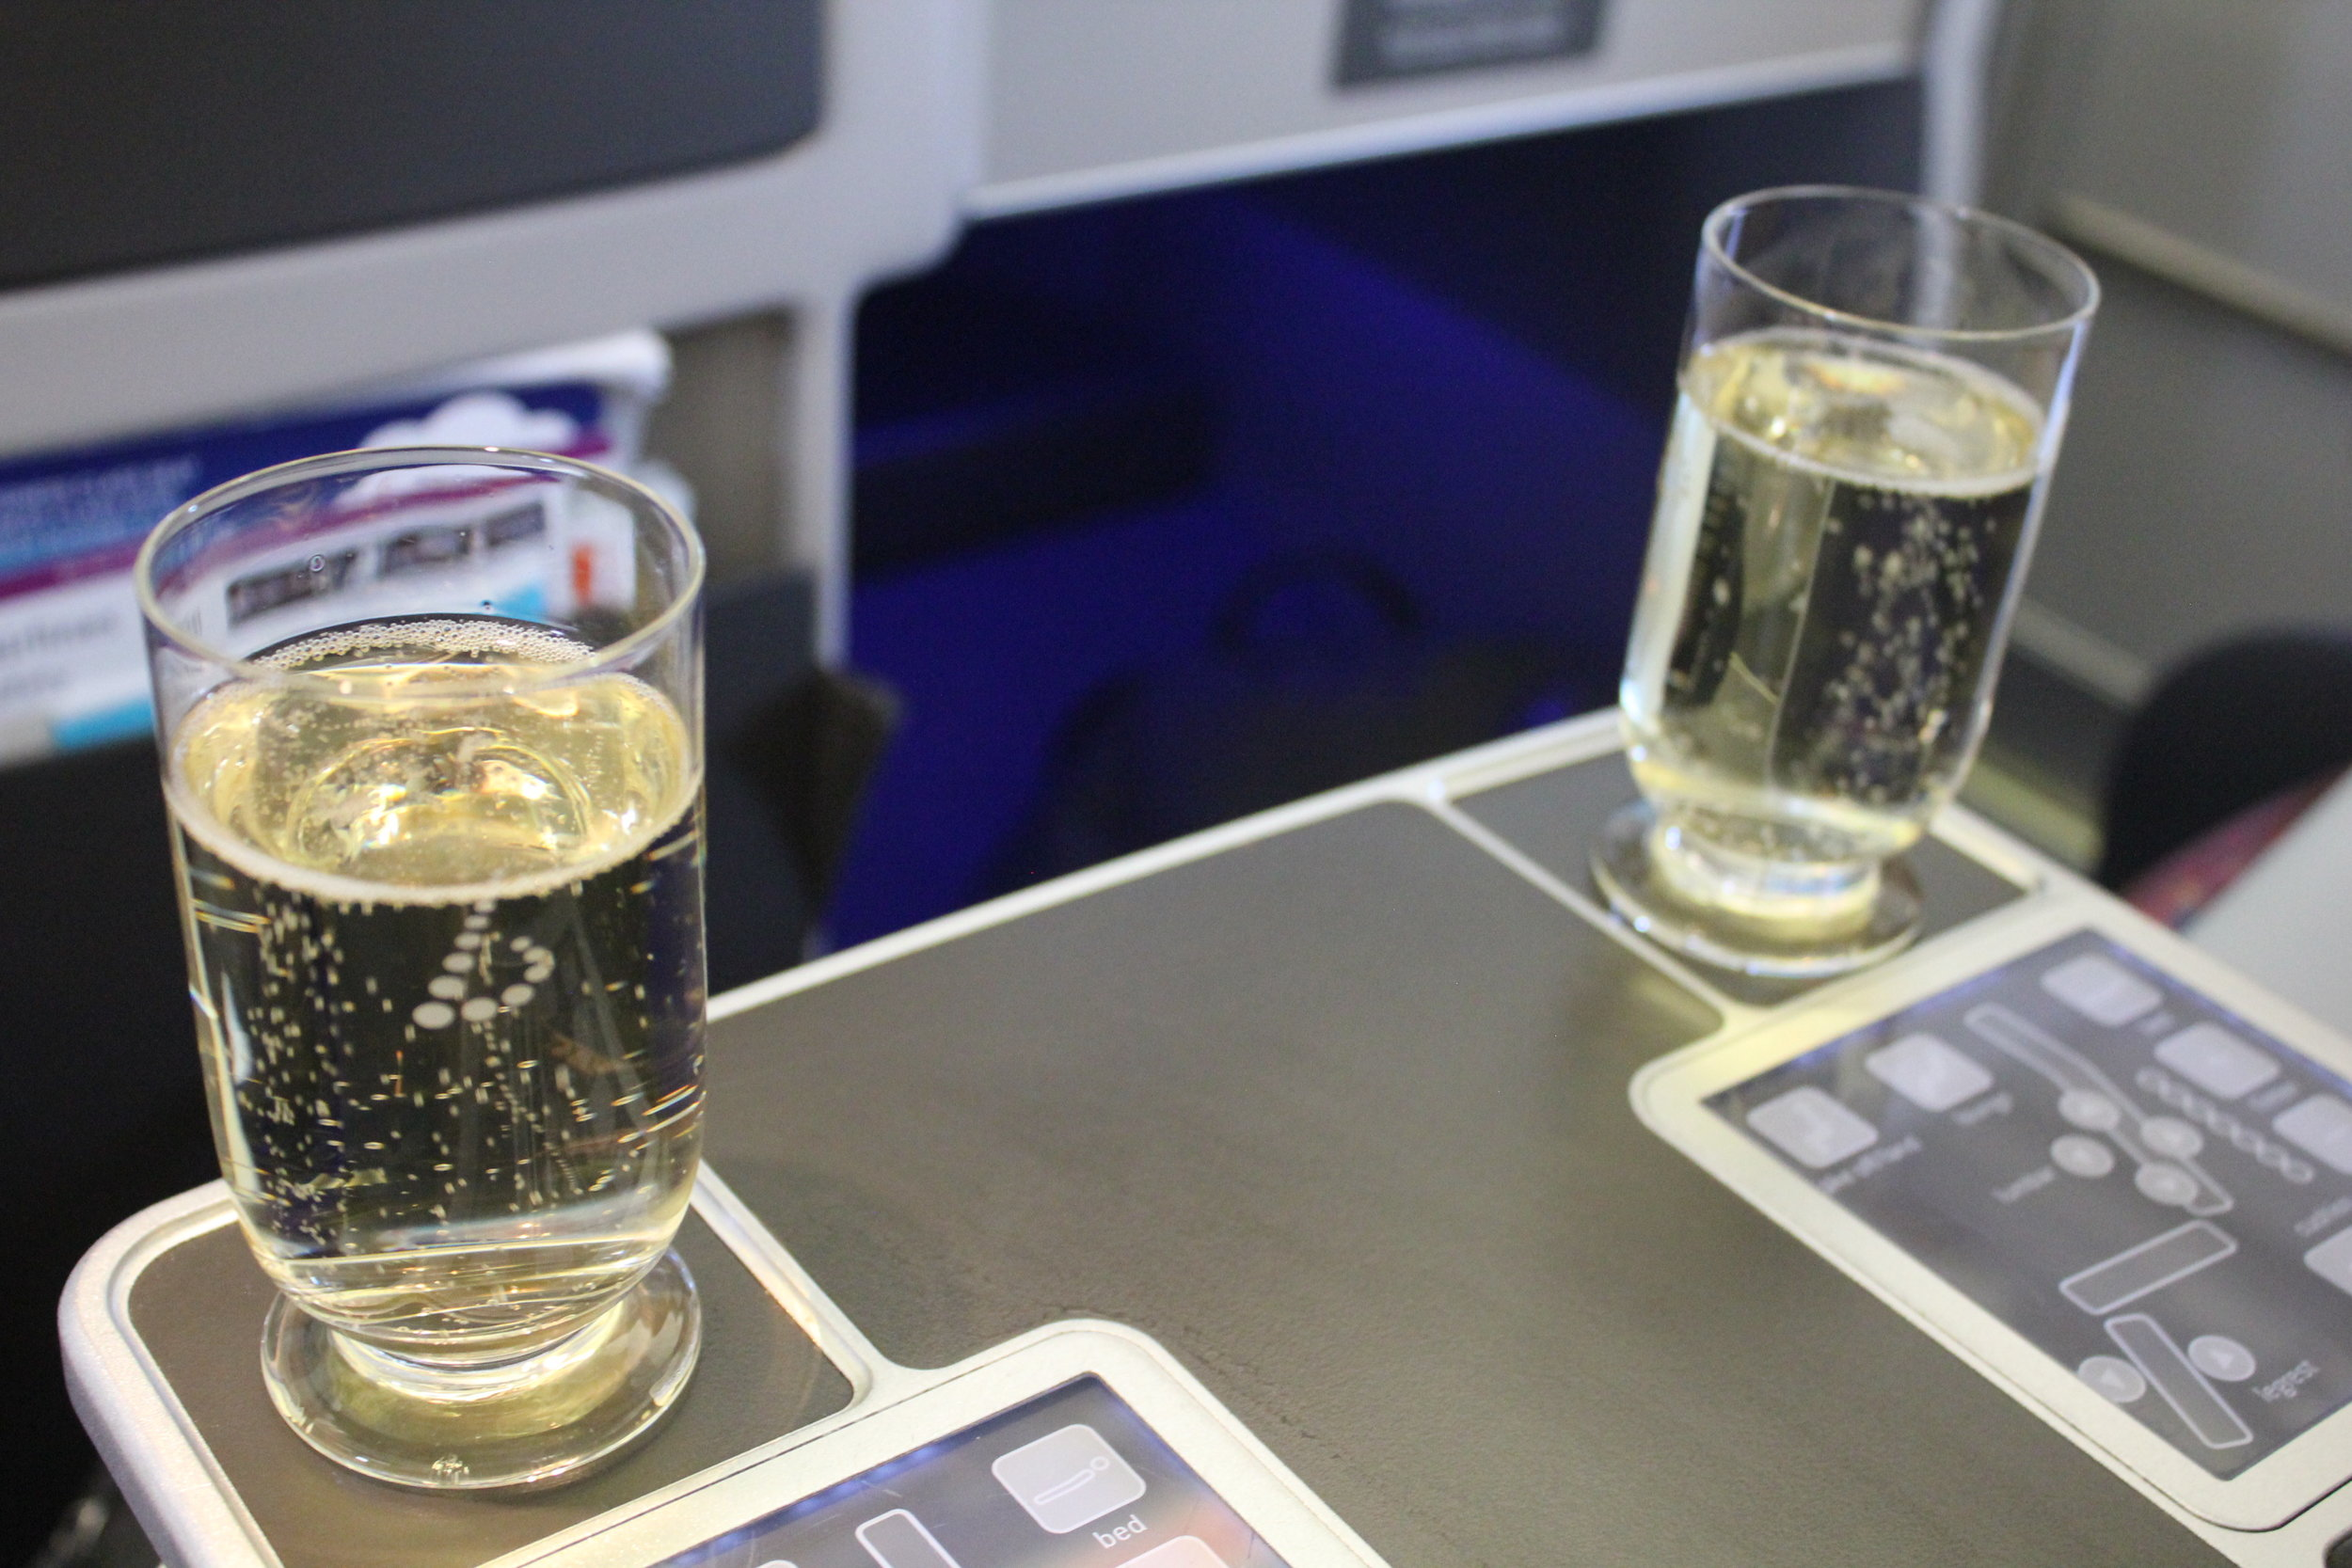 Brussels Airlines business class – Pre-departure champagne